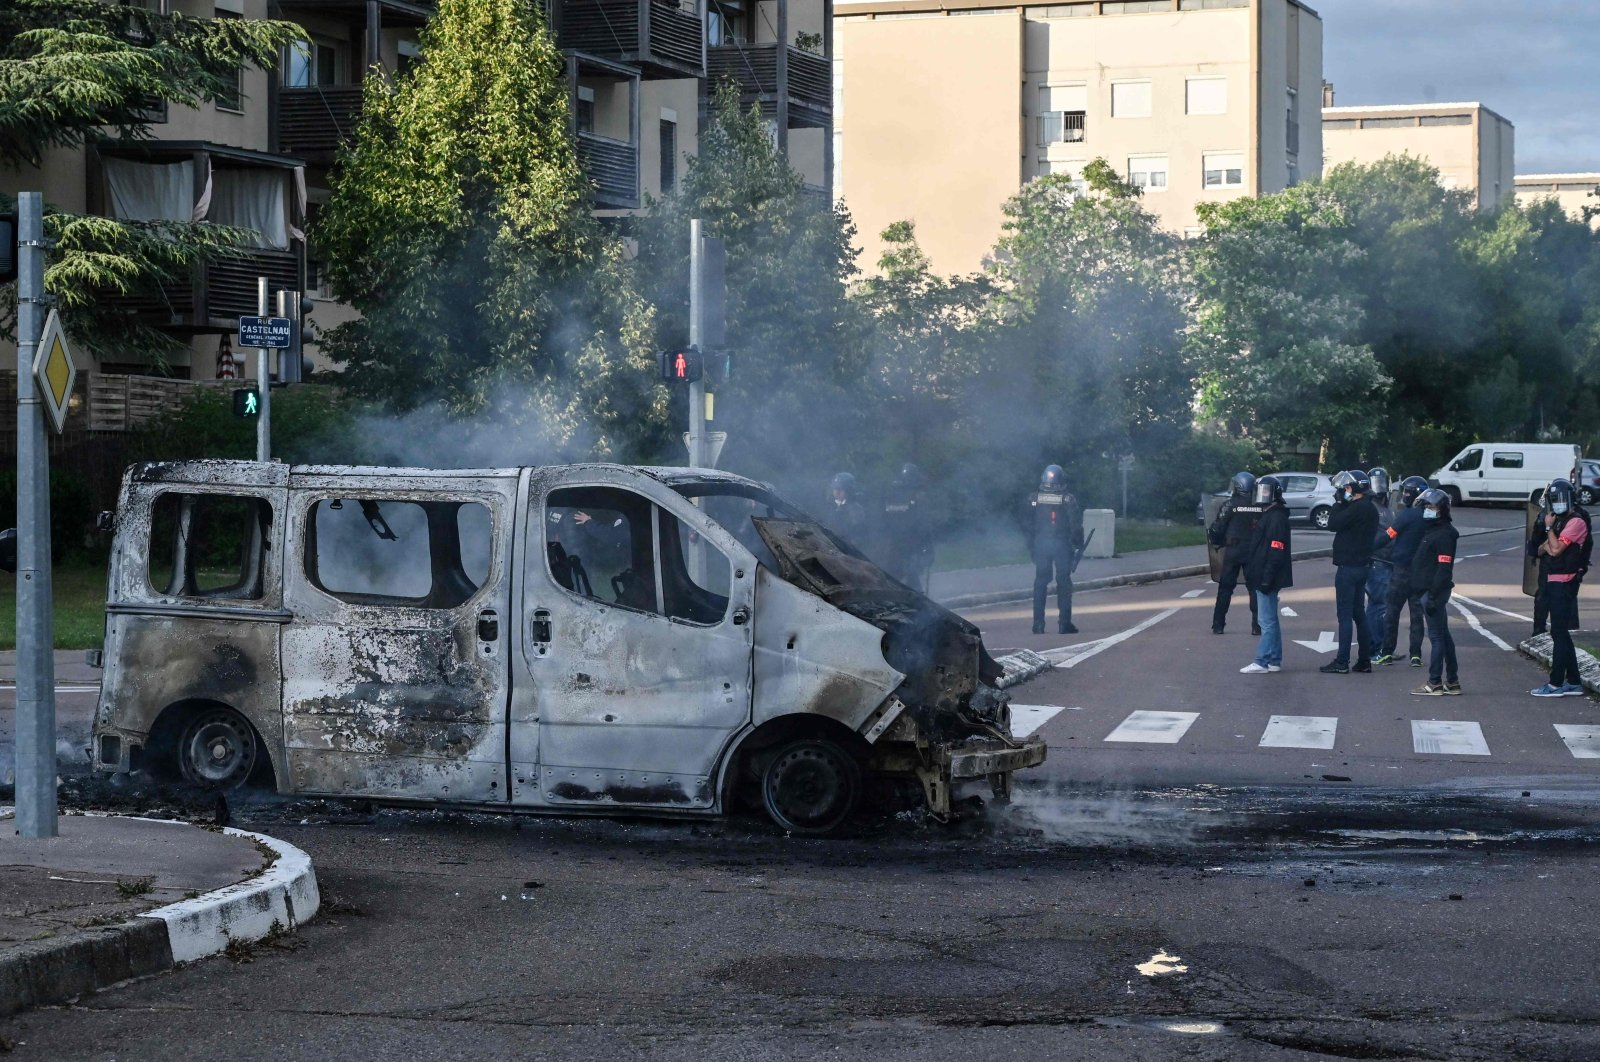 Police and gendarmes stand near a burnt van in the Gresilles area of Dijon, France, June 15, 2020. (AFP Photo)